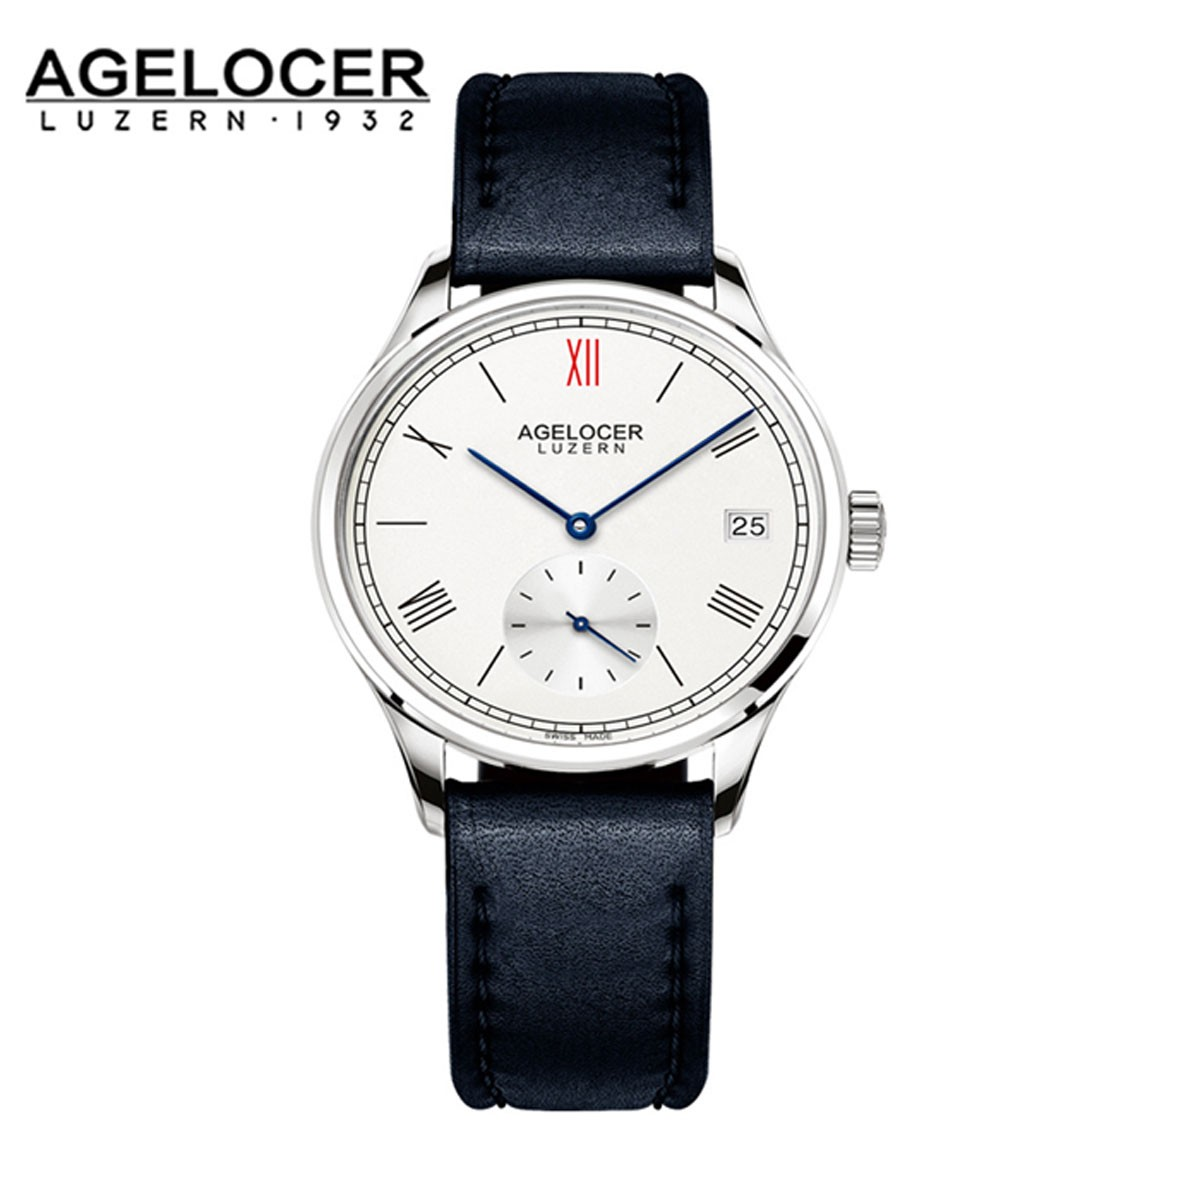 Agelocer Luzern 36mm Steel 1201A1